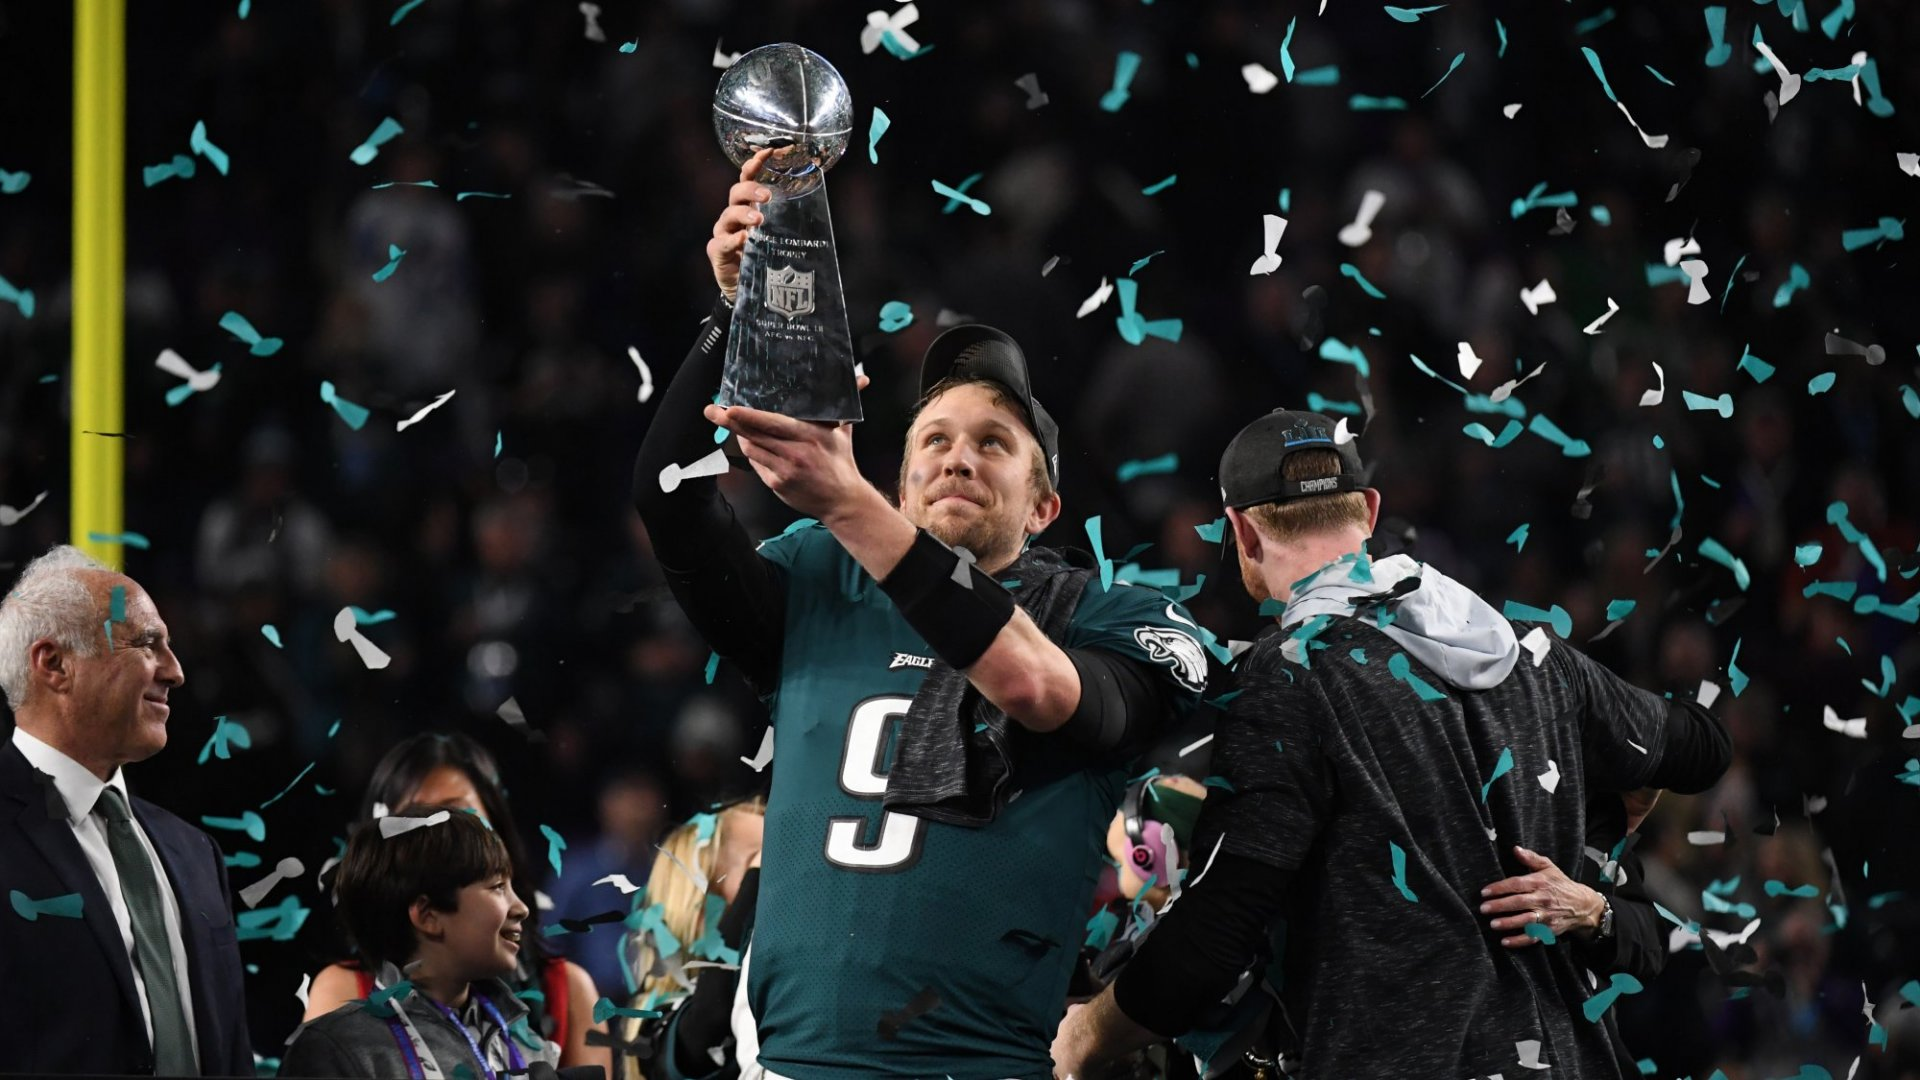 The Philadelphia Eagles won on the field, but who won off of it, during the commercial breaks?